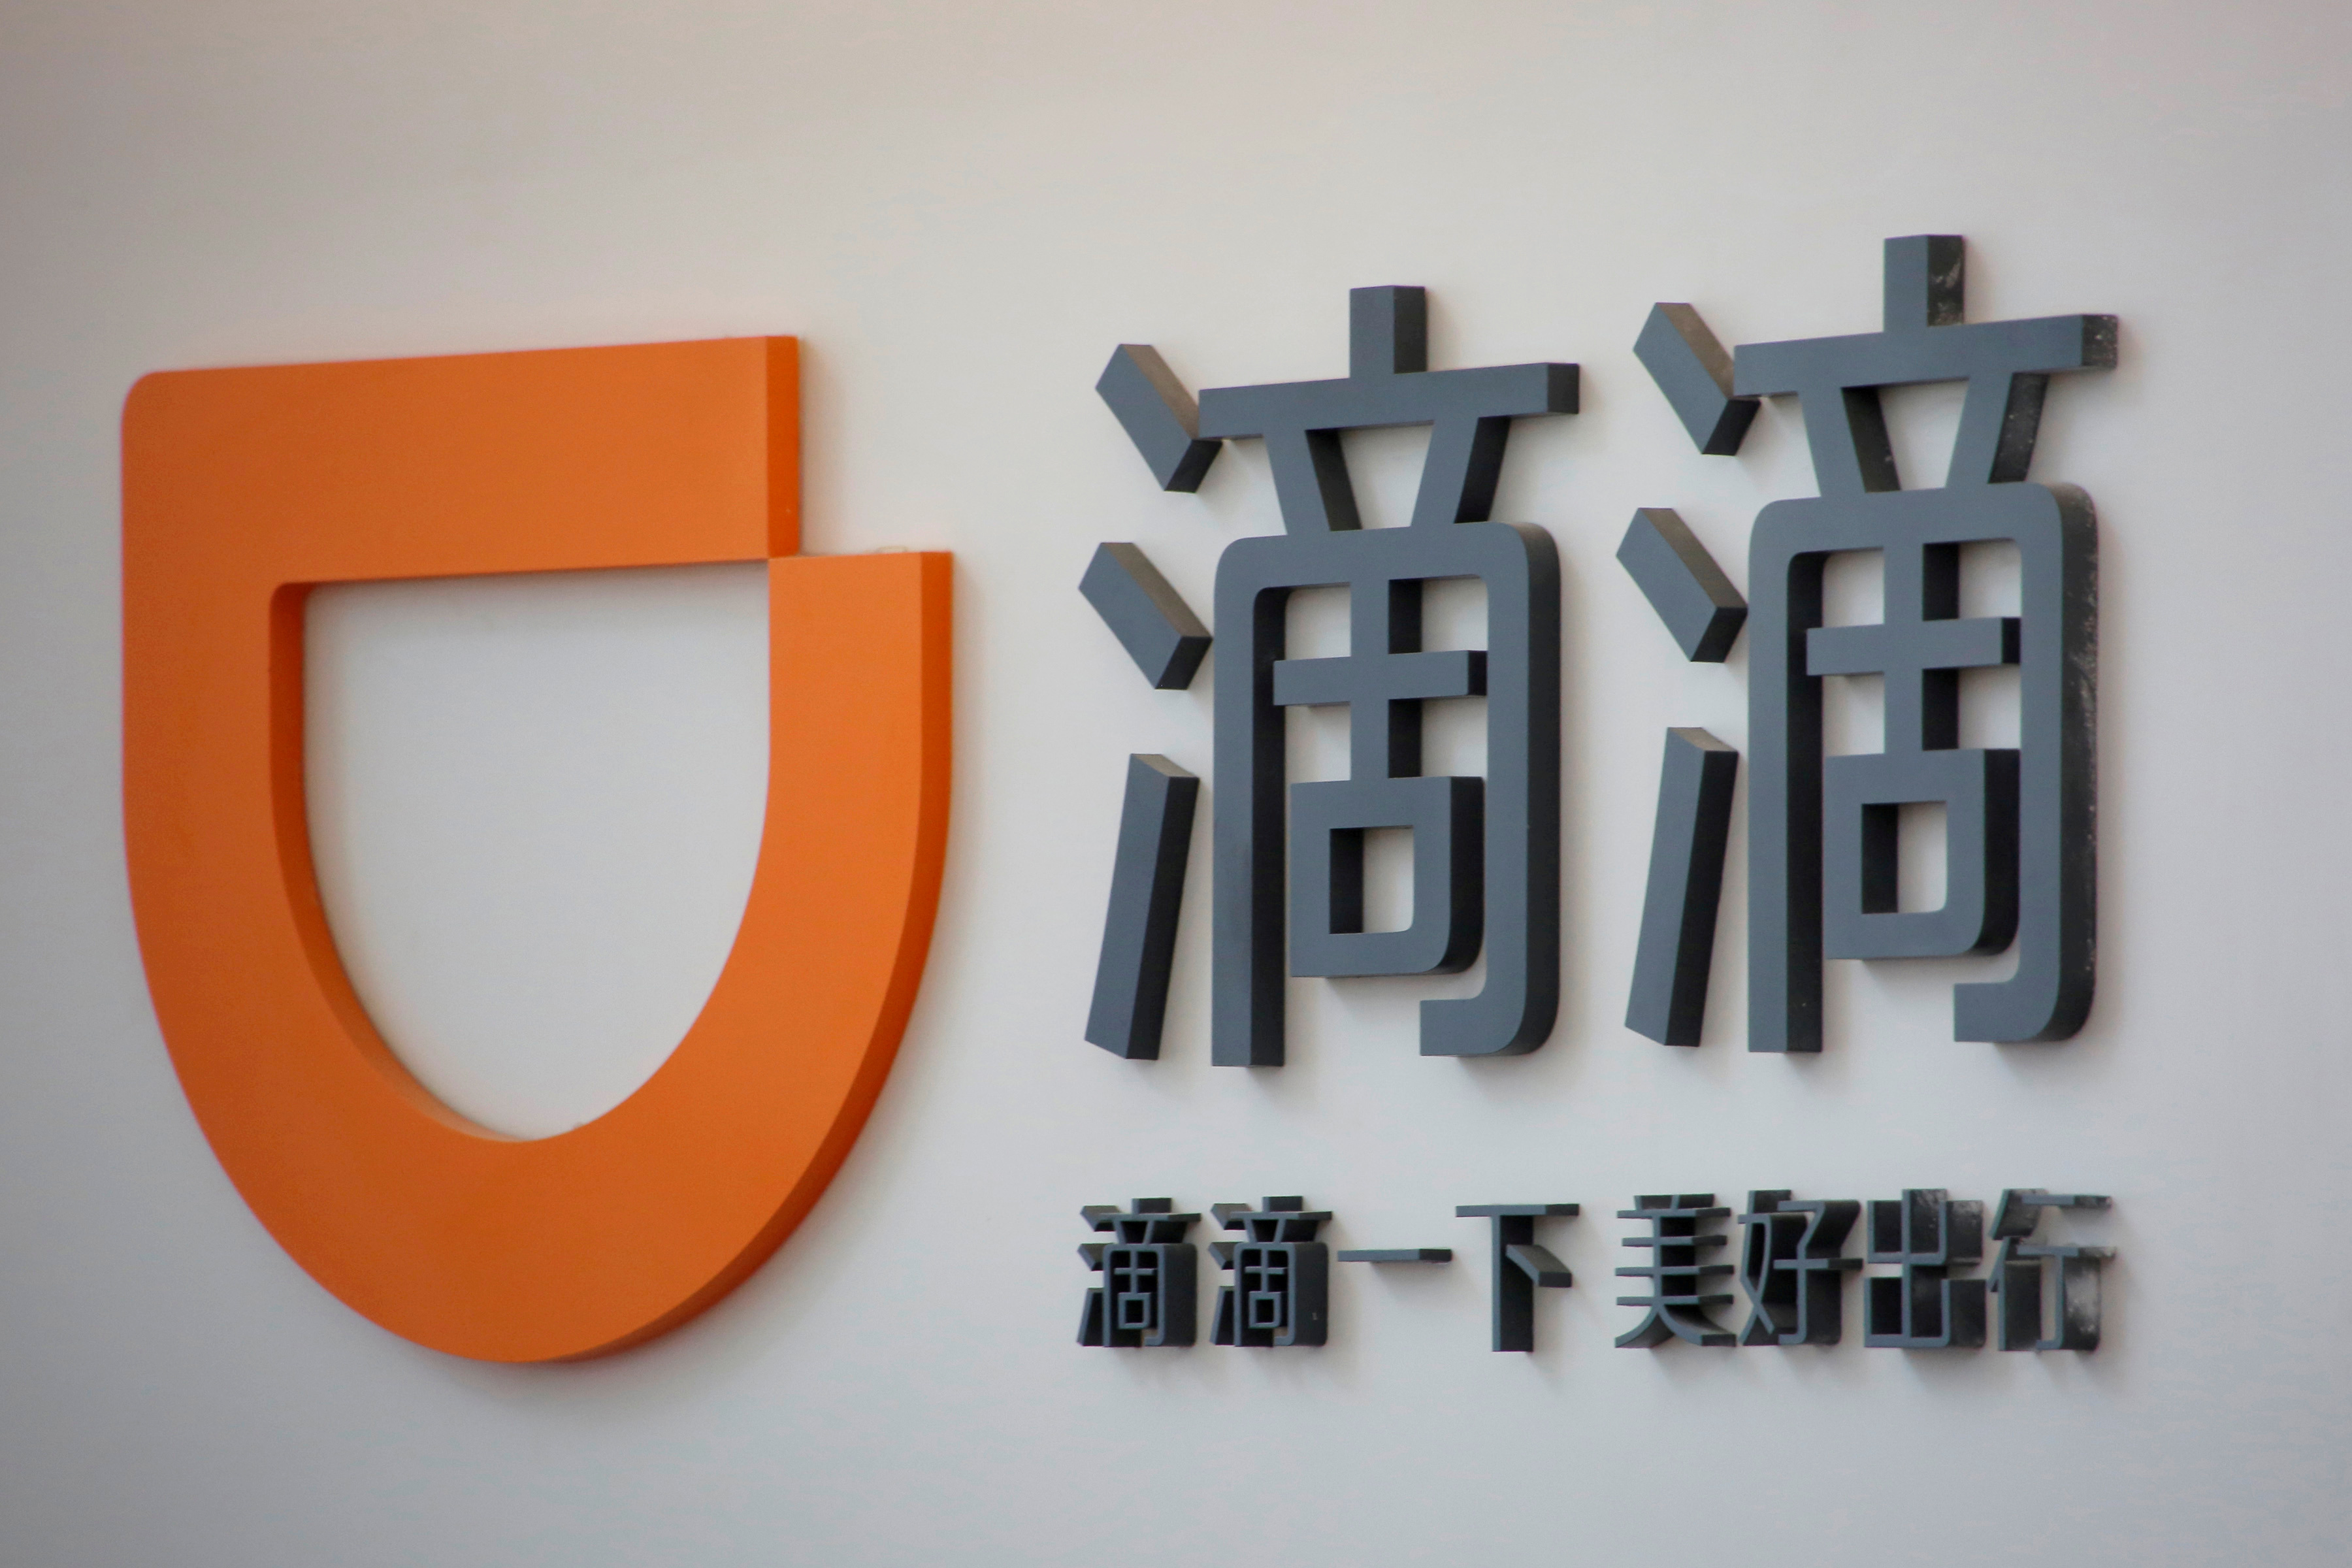 FILE PHOTO: The logo of Didi Chuxing is seen at its headquarters in Beijing, China, May 18, 2016.